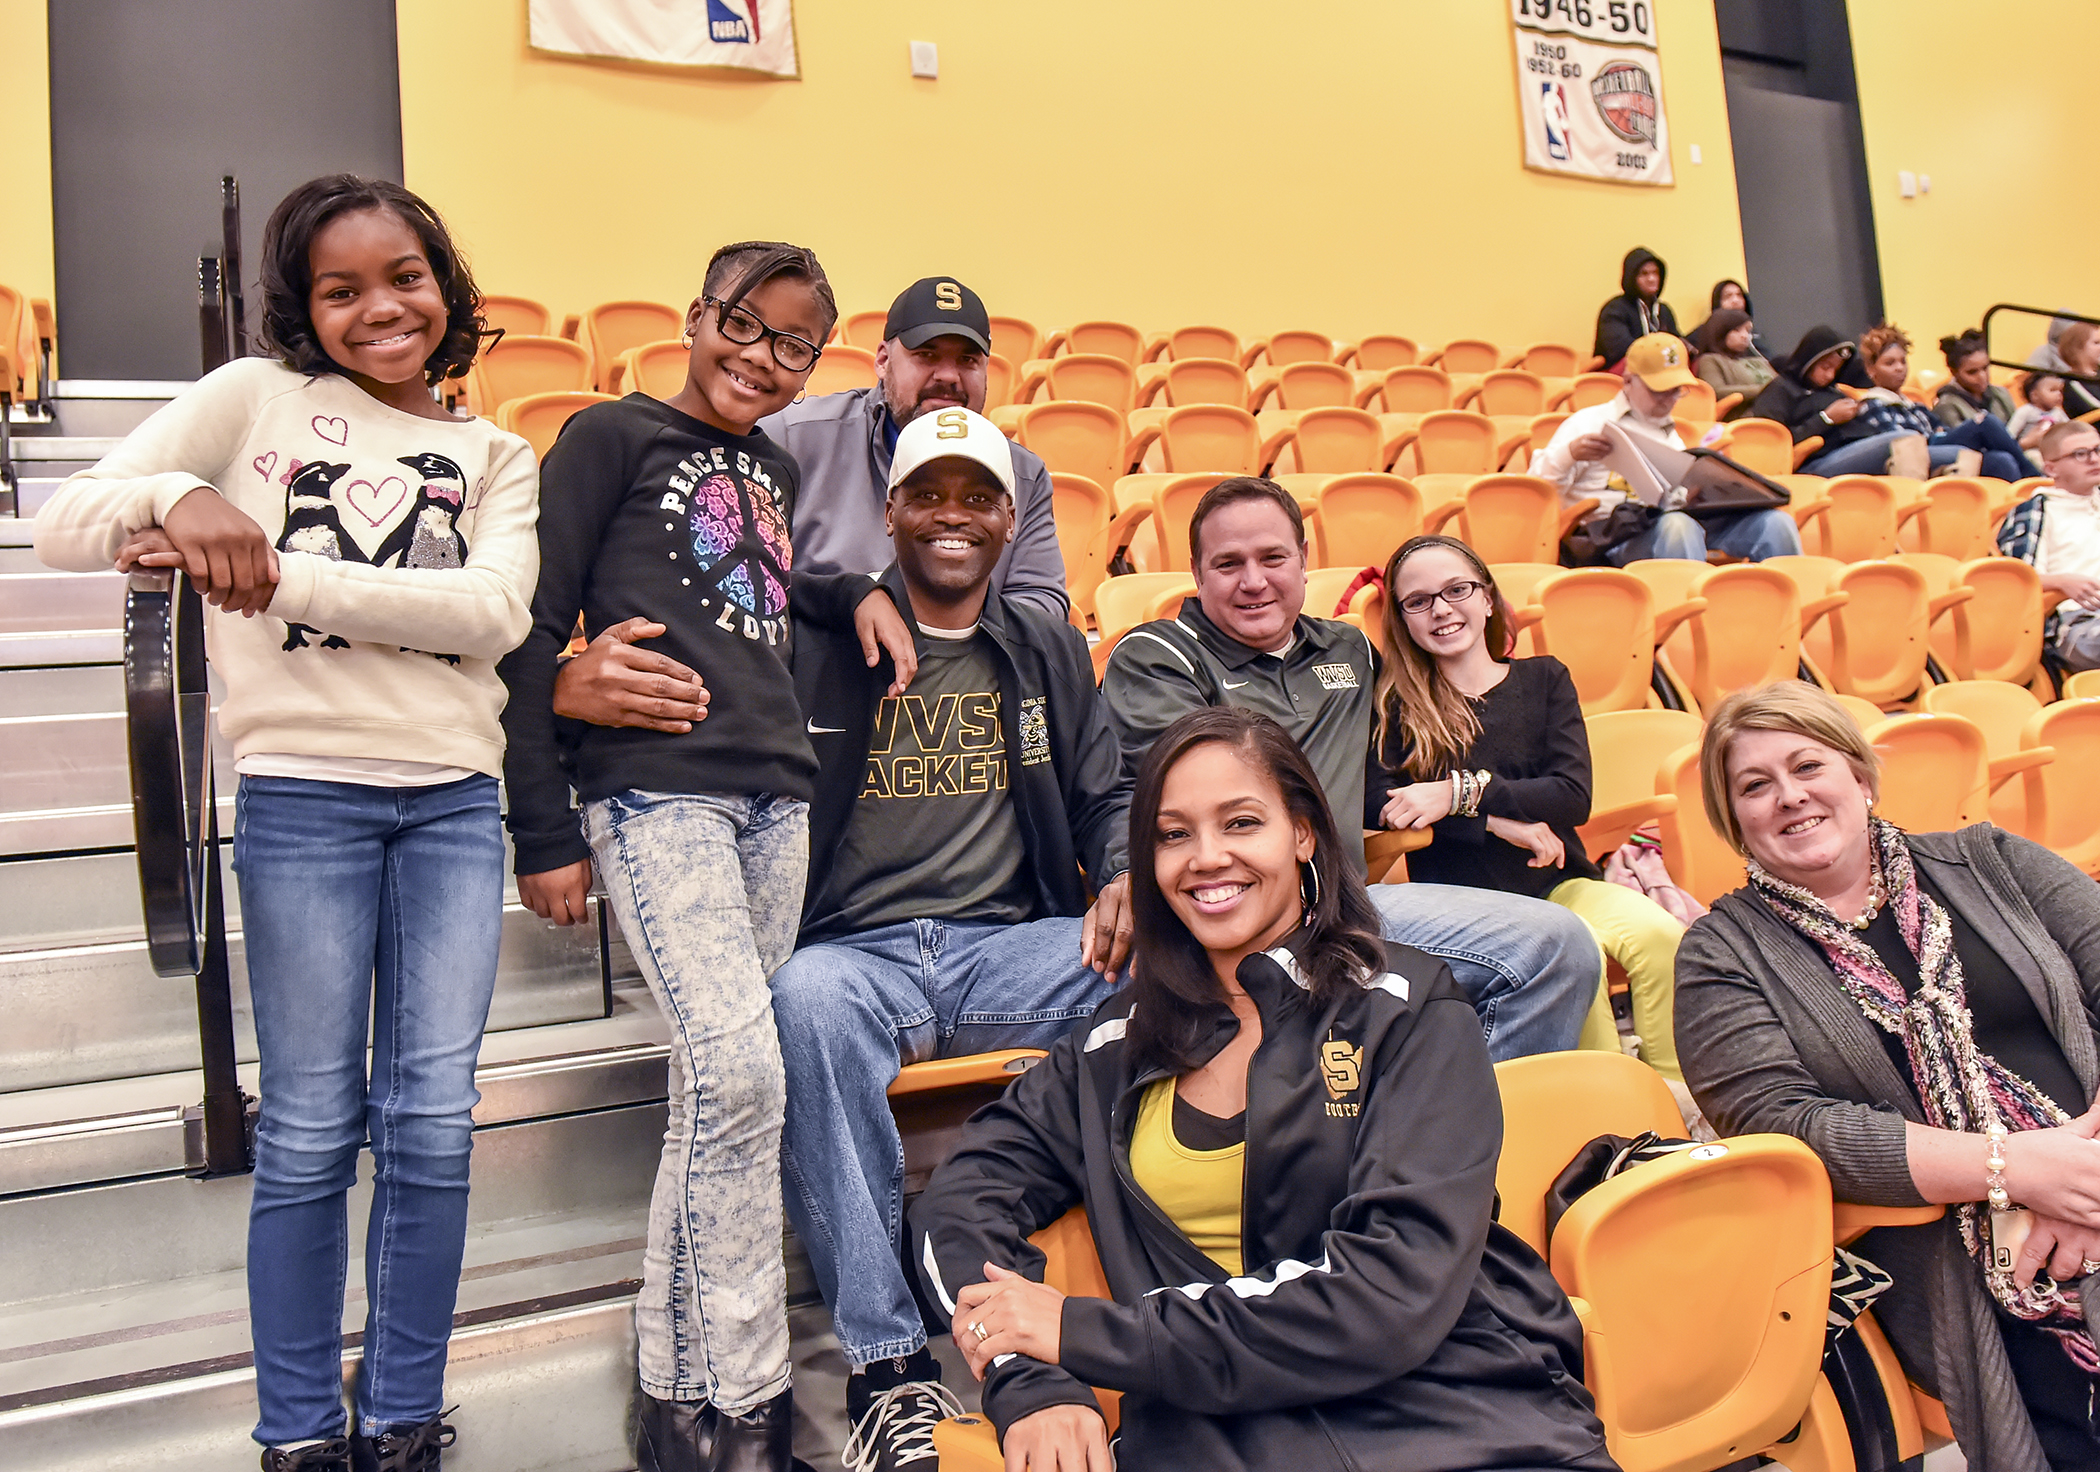 First Family enjoys a WVSU basketball game